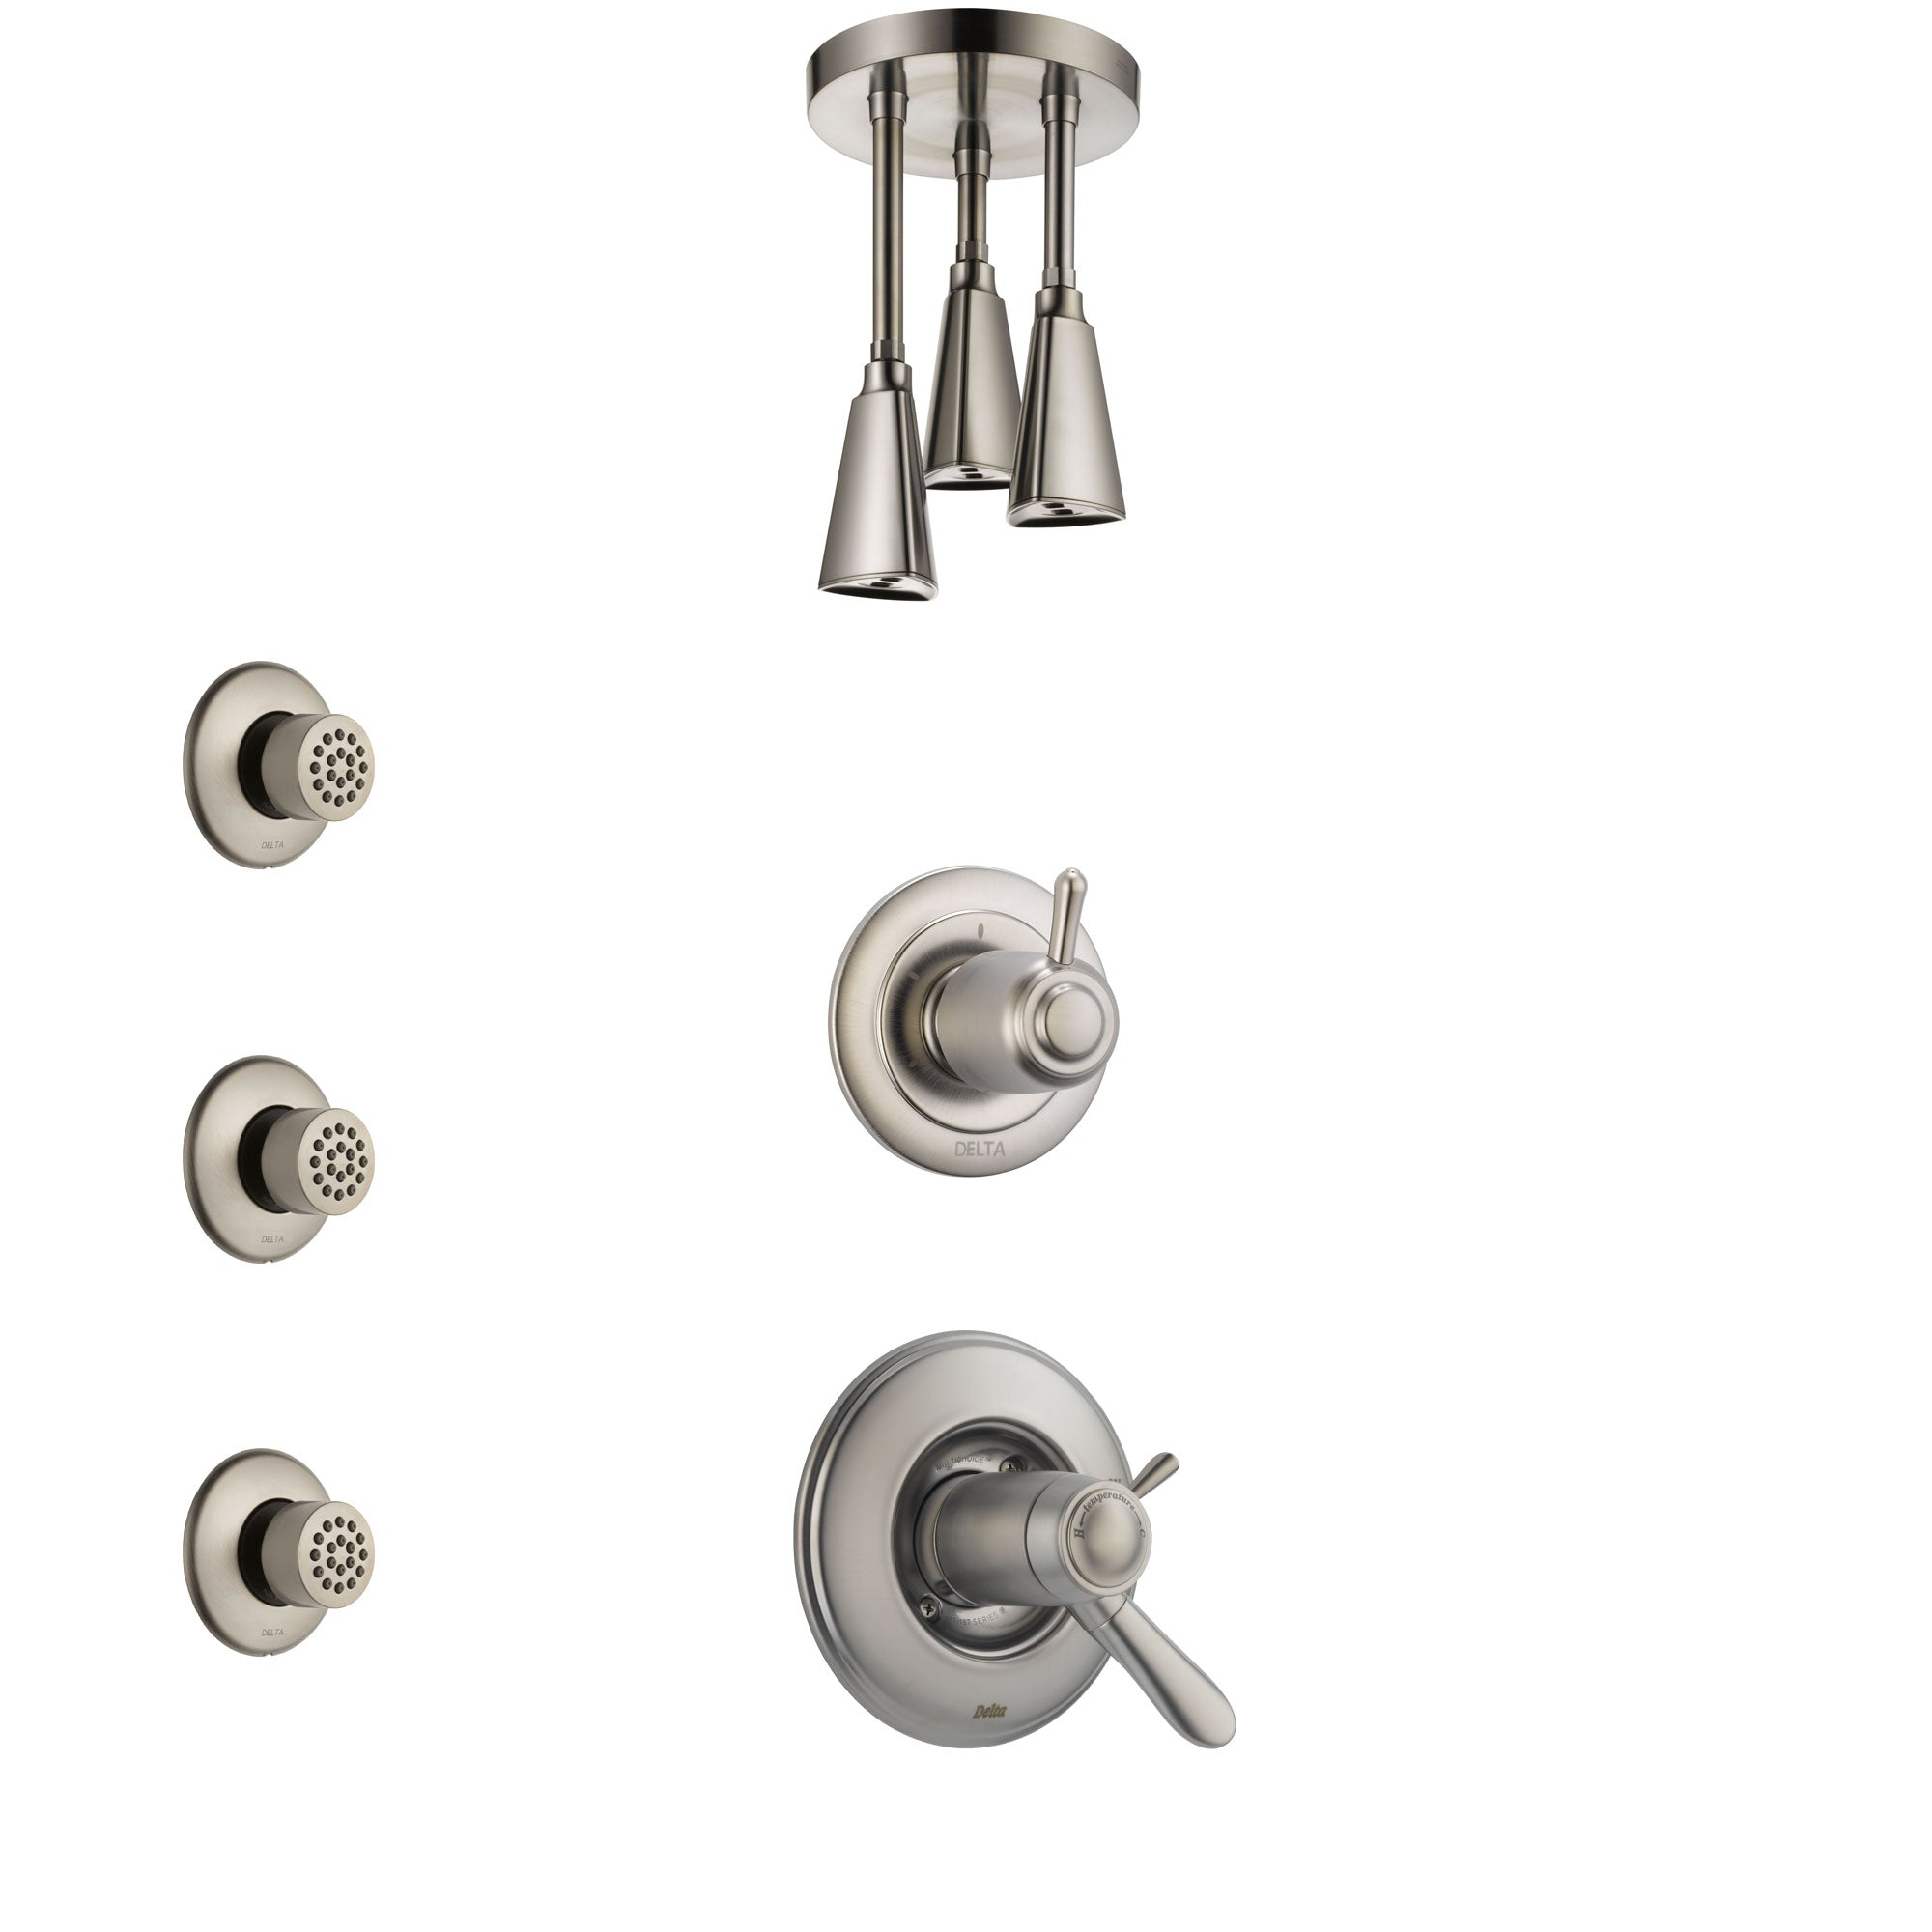 Delta Lahara Dual Thermostatic Control Handle Stainless Steel Finish Shower System, Diverter, Ceiling Mount Showerhead, and 3 Body Sprays SS17T381SS6